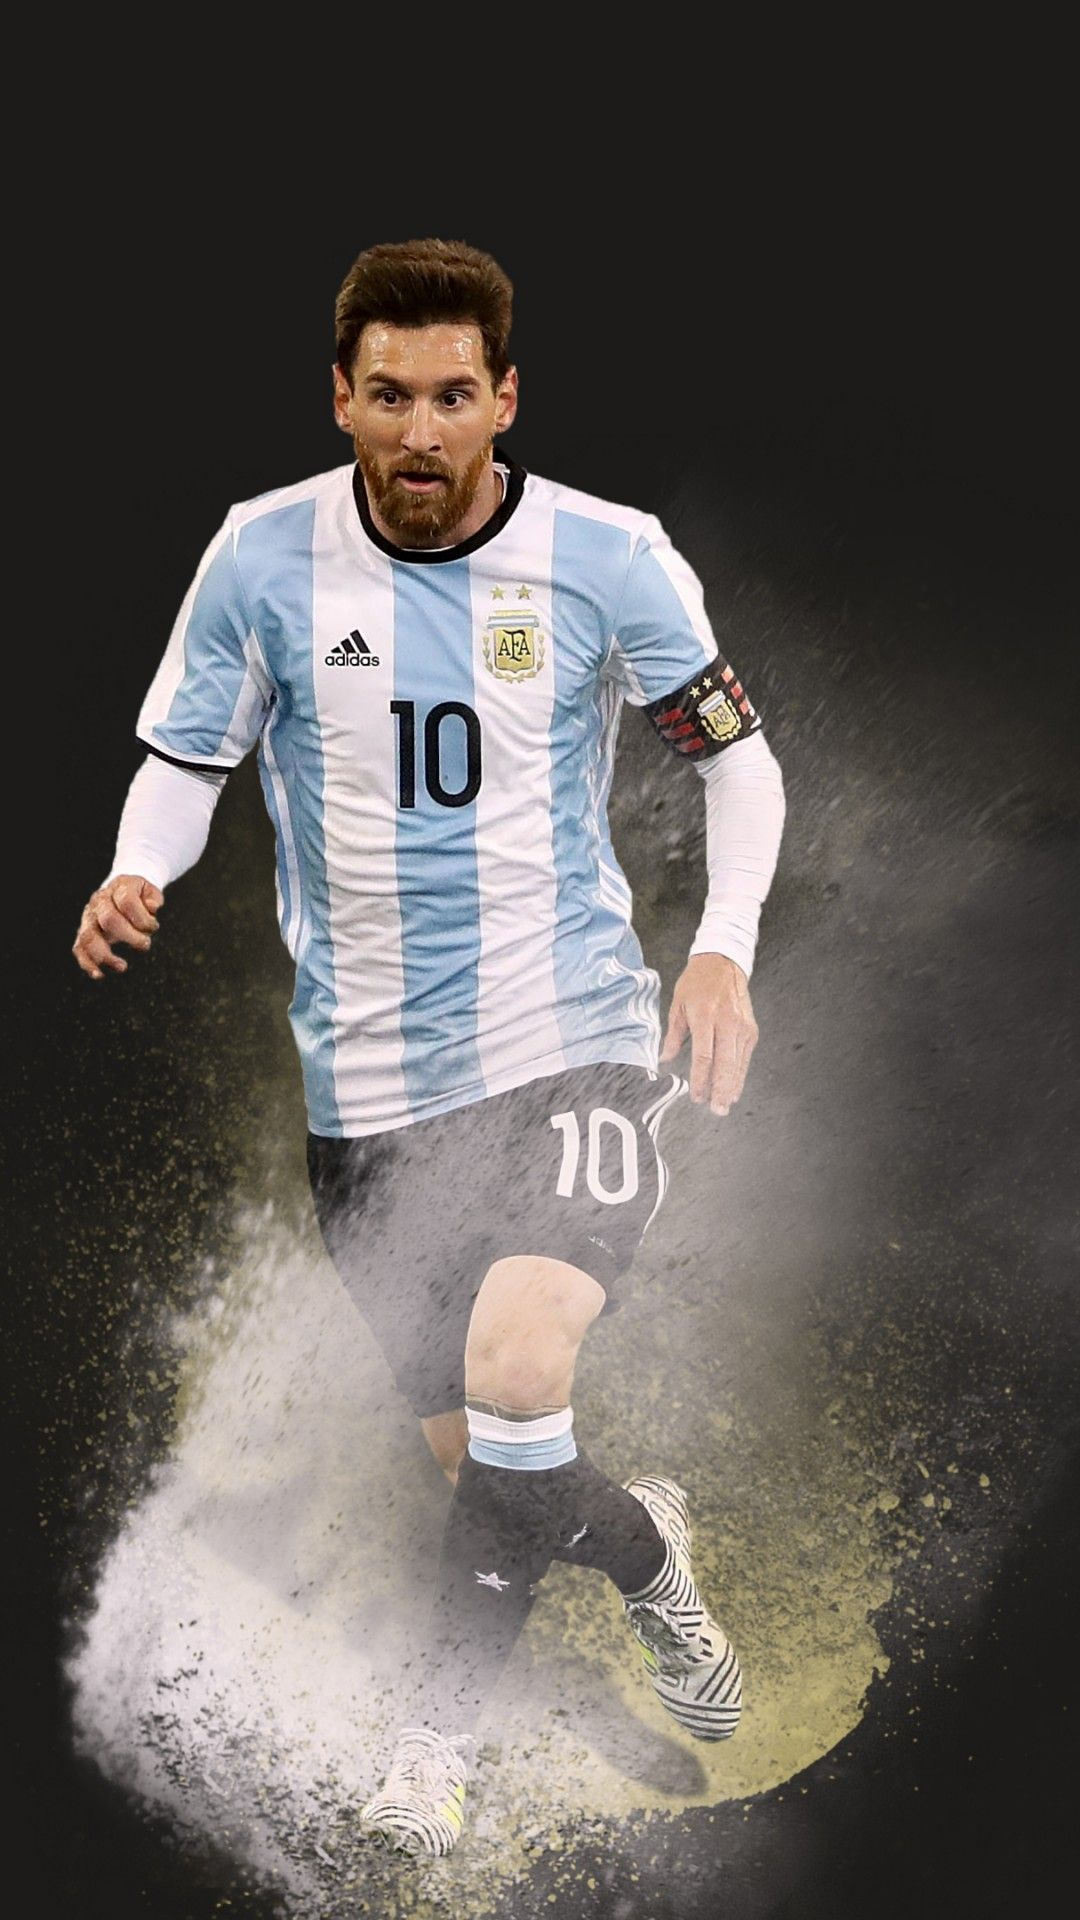 Argentina Messi Wallpaper Ios In 2020 Lionel Messi Messi Sports Chic Outfit